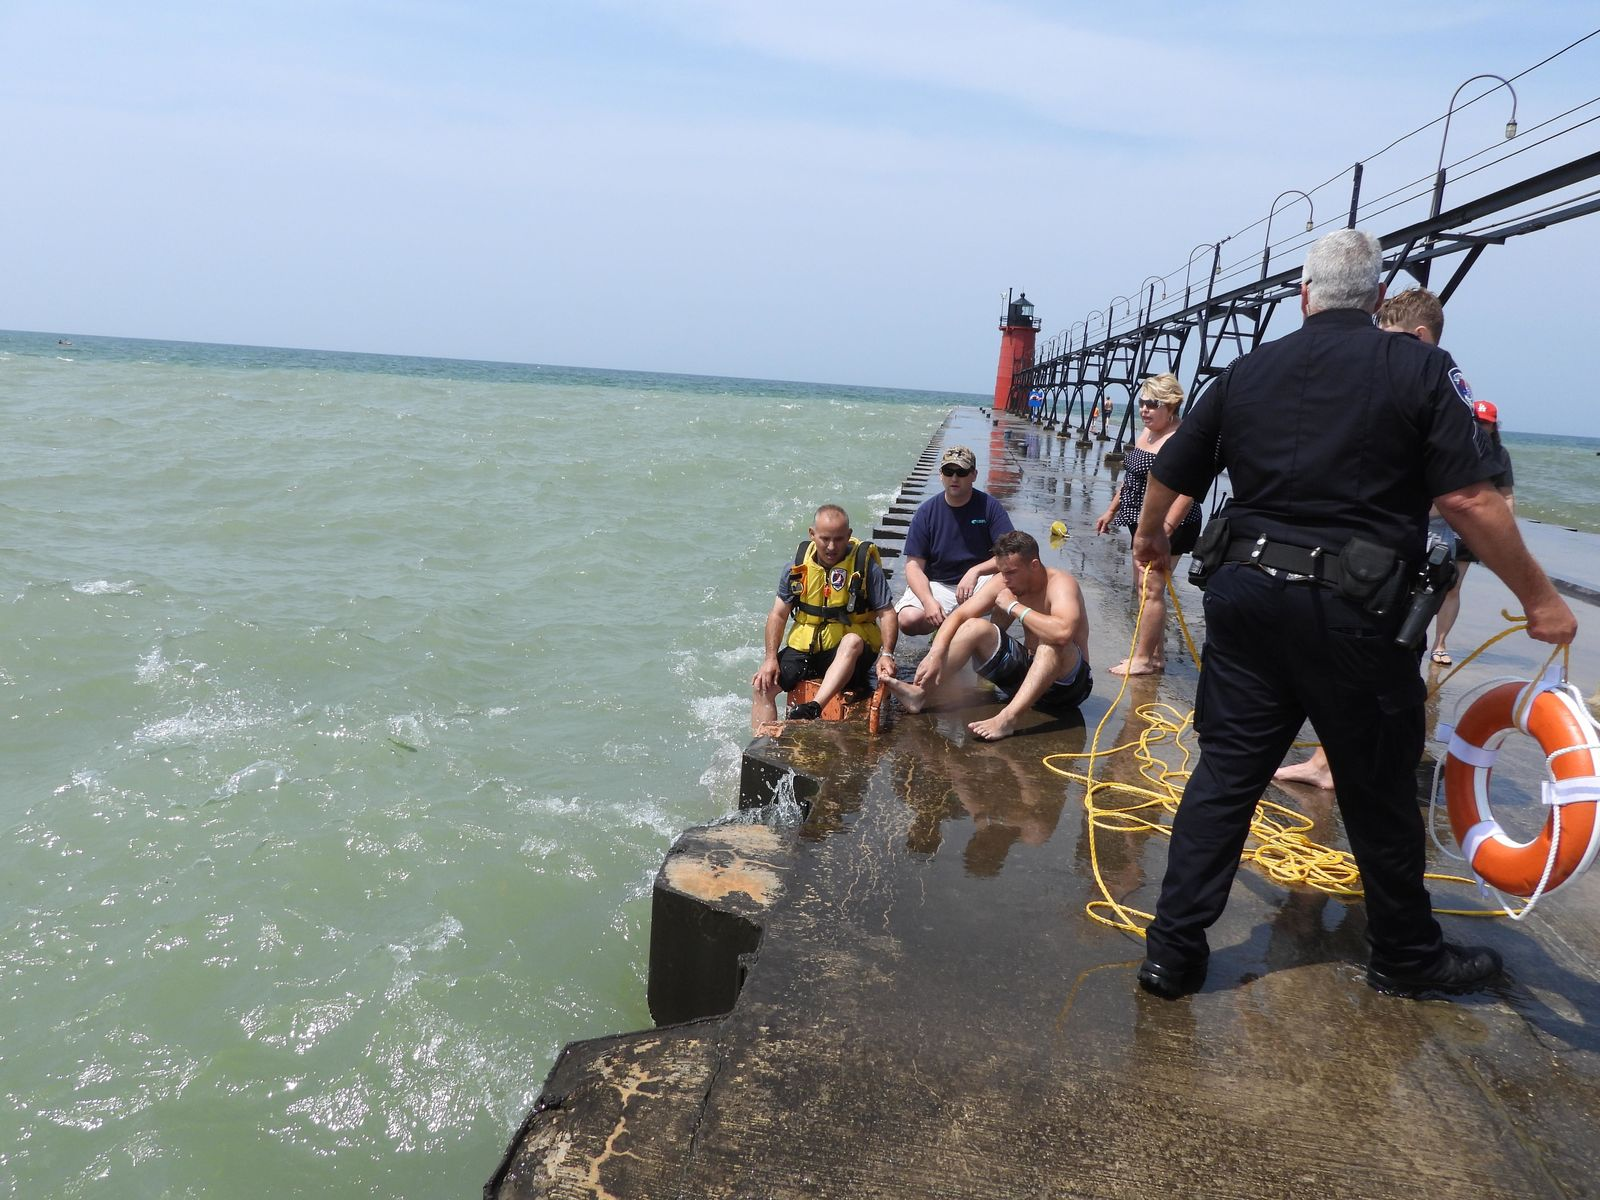 An 18-year-old boy was rescued by officials with the South Haven Area Emergency Services on Friday, after being caught in a rip tide along the South Pier. (WWMT/Courtesy of South Haven Area Emergency Services)<p></p>